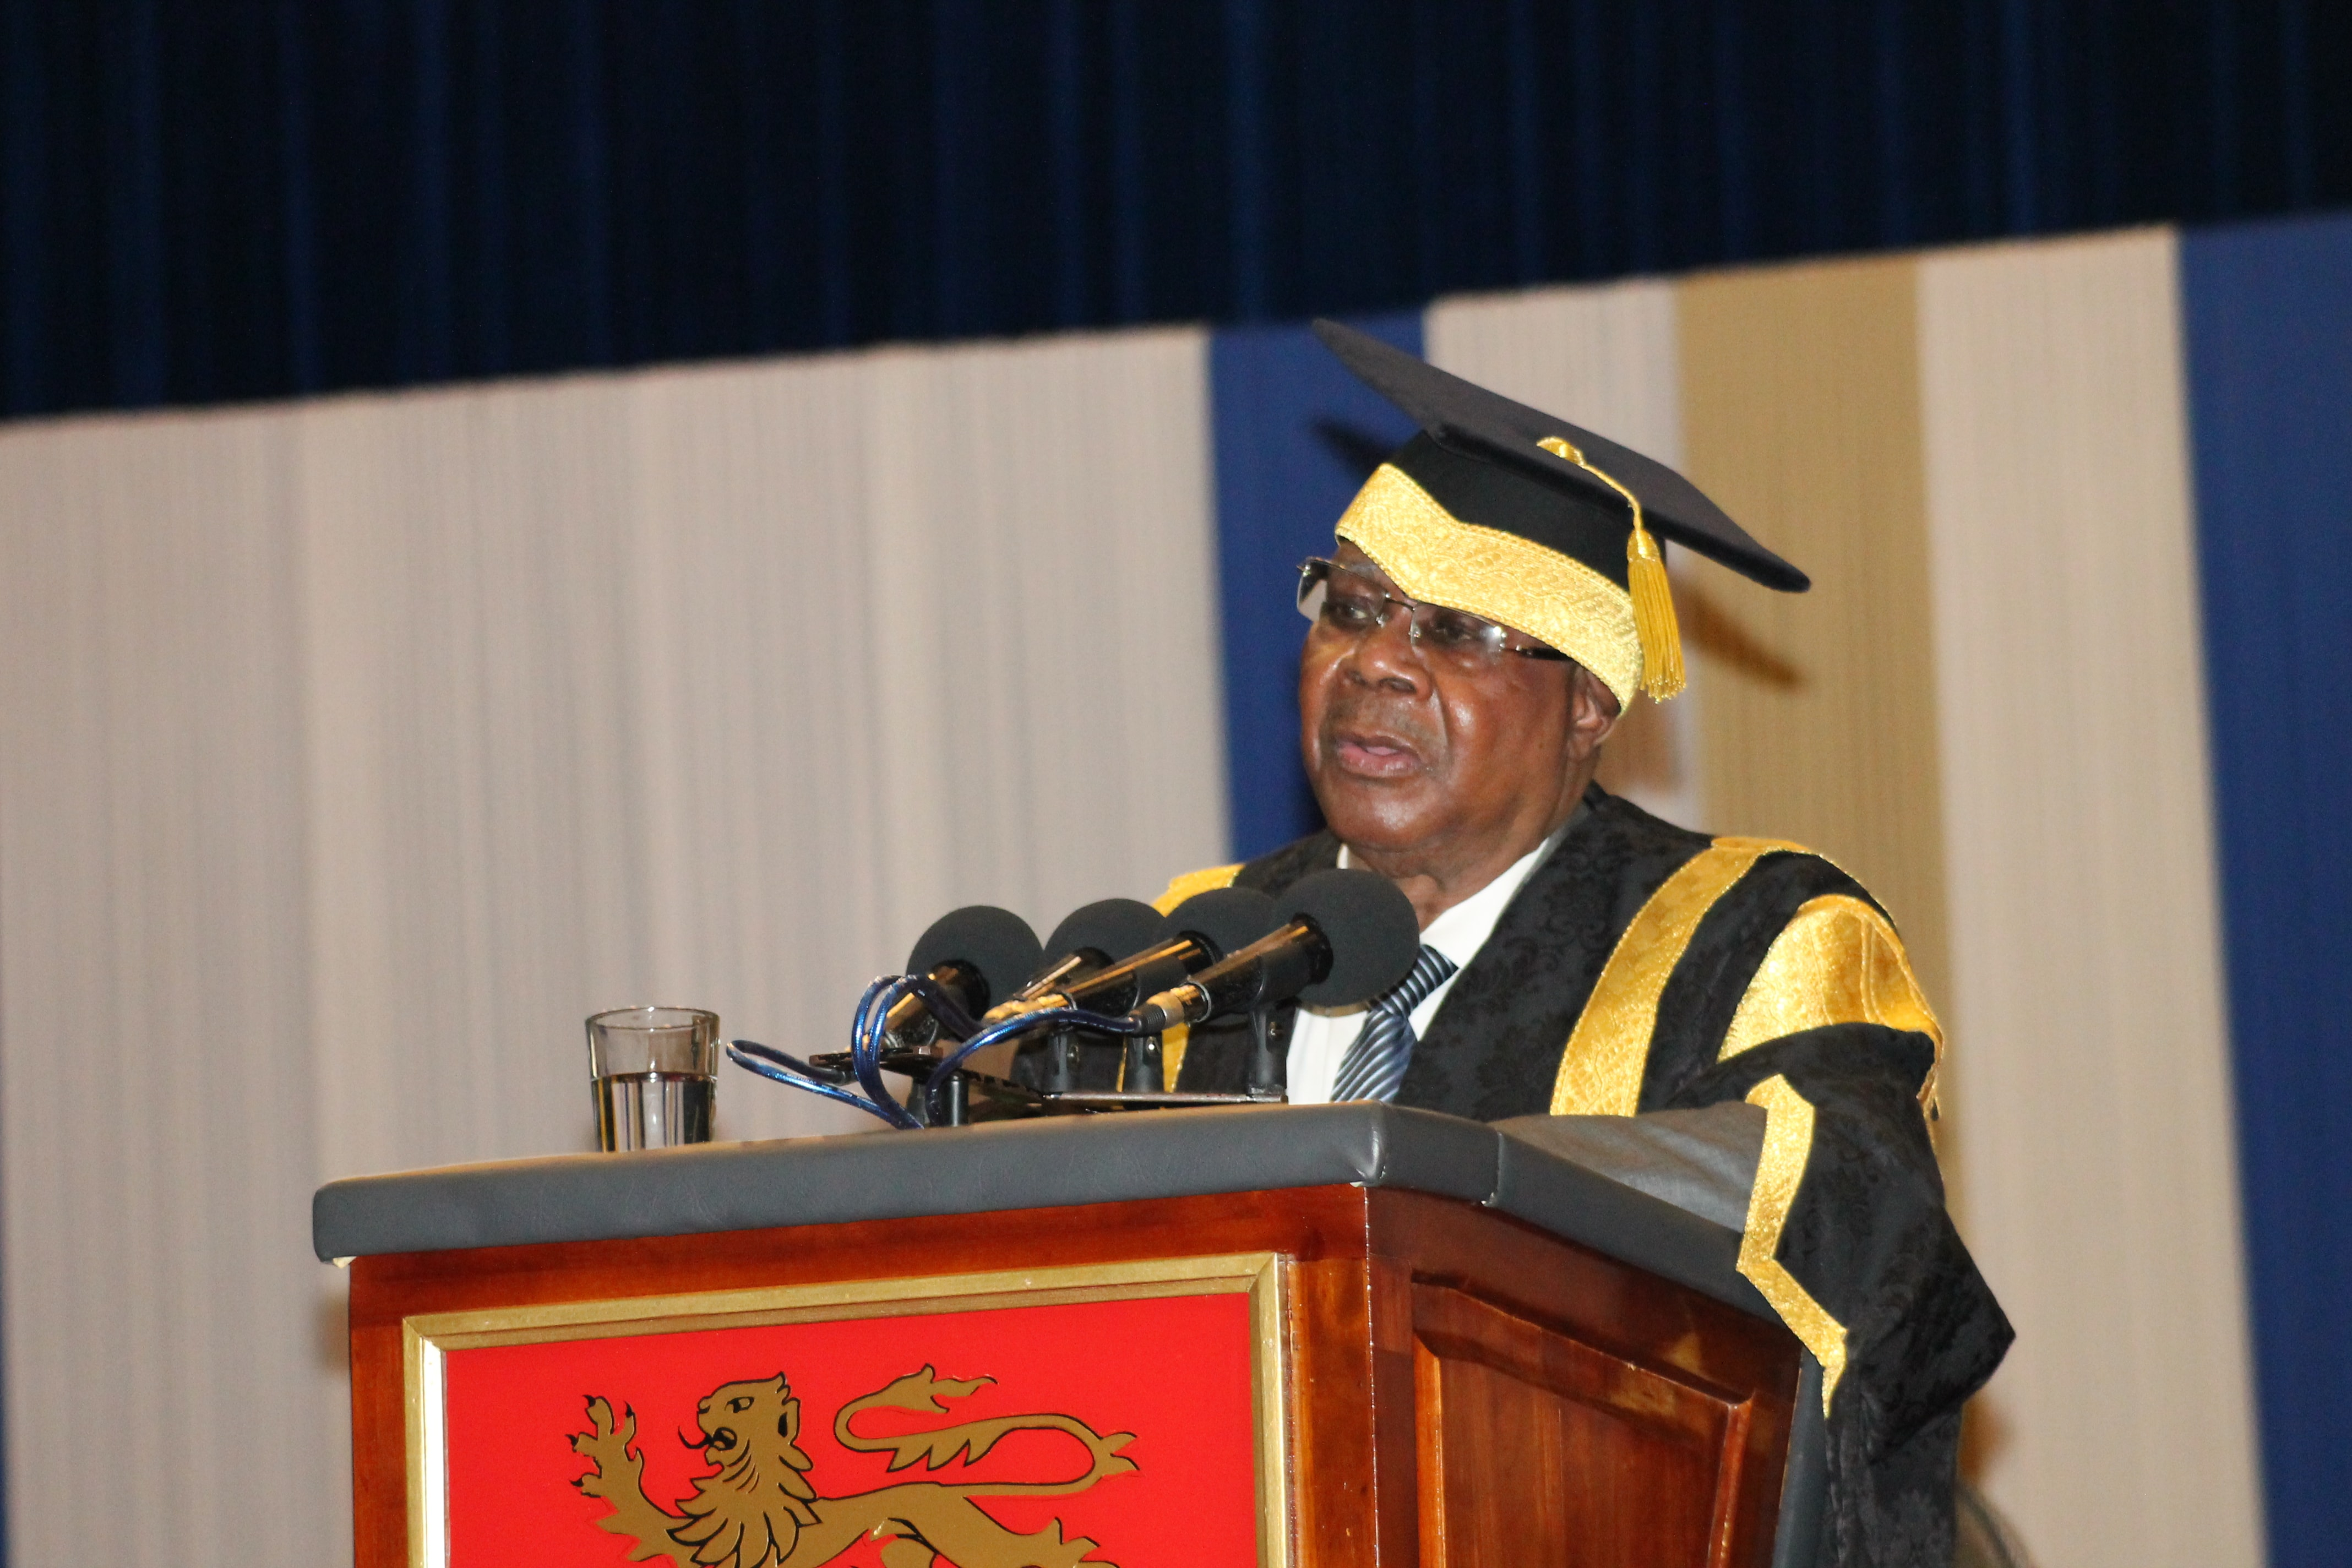 SPEECH BY THE CHANCELLOR OF UNIMA ON 14TH NOVEMBER, 2018 AT THE GRADUATION CEREMONYY